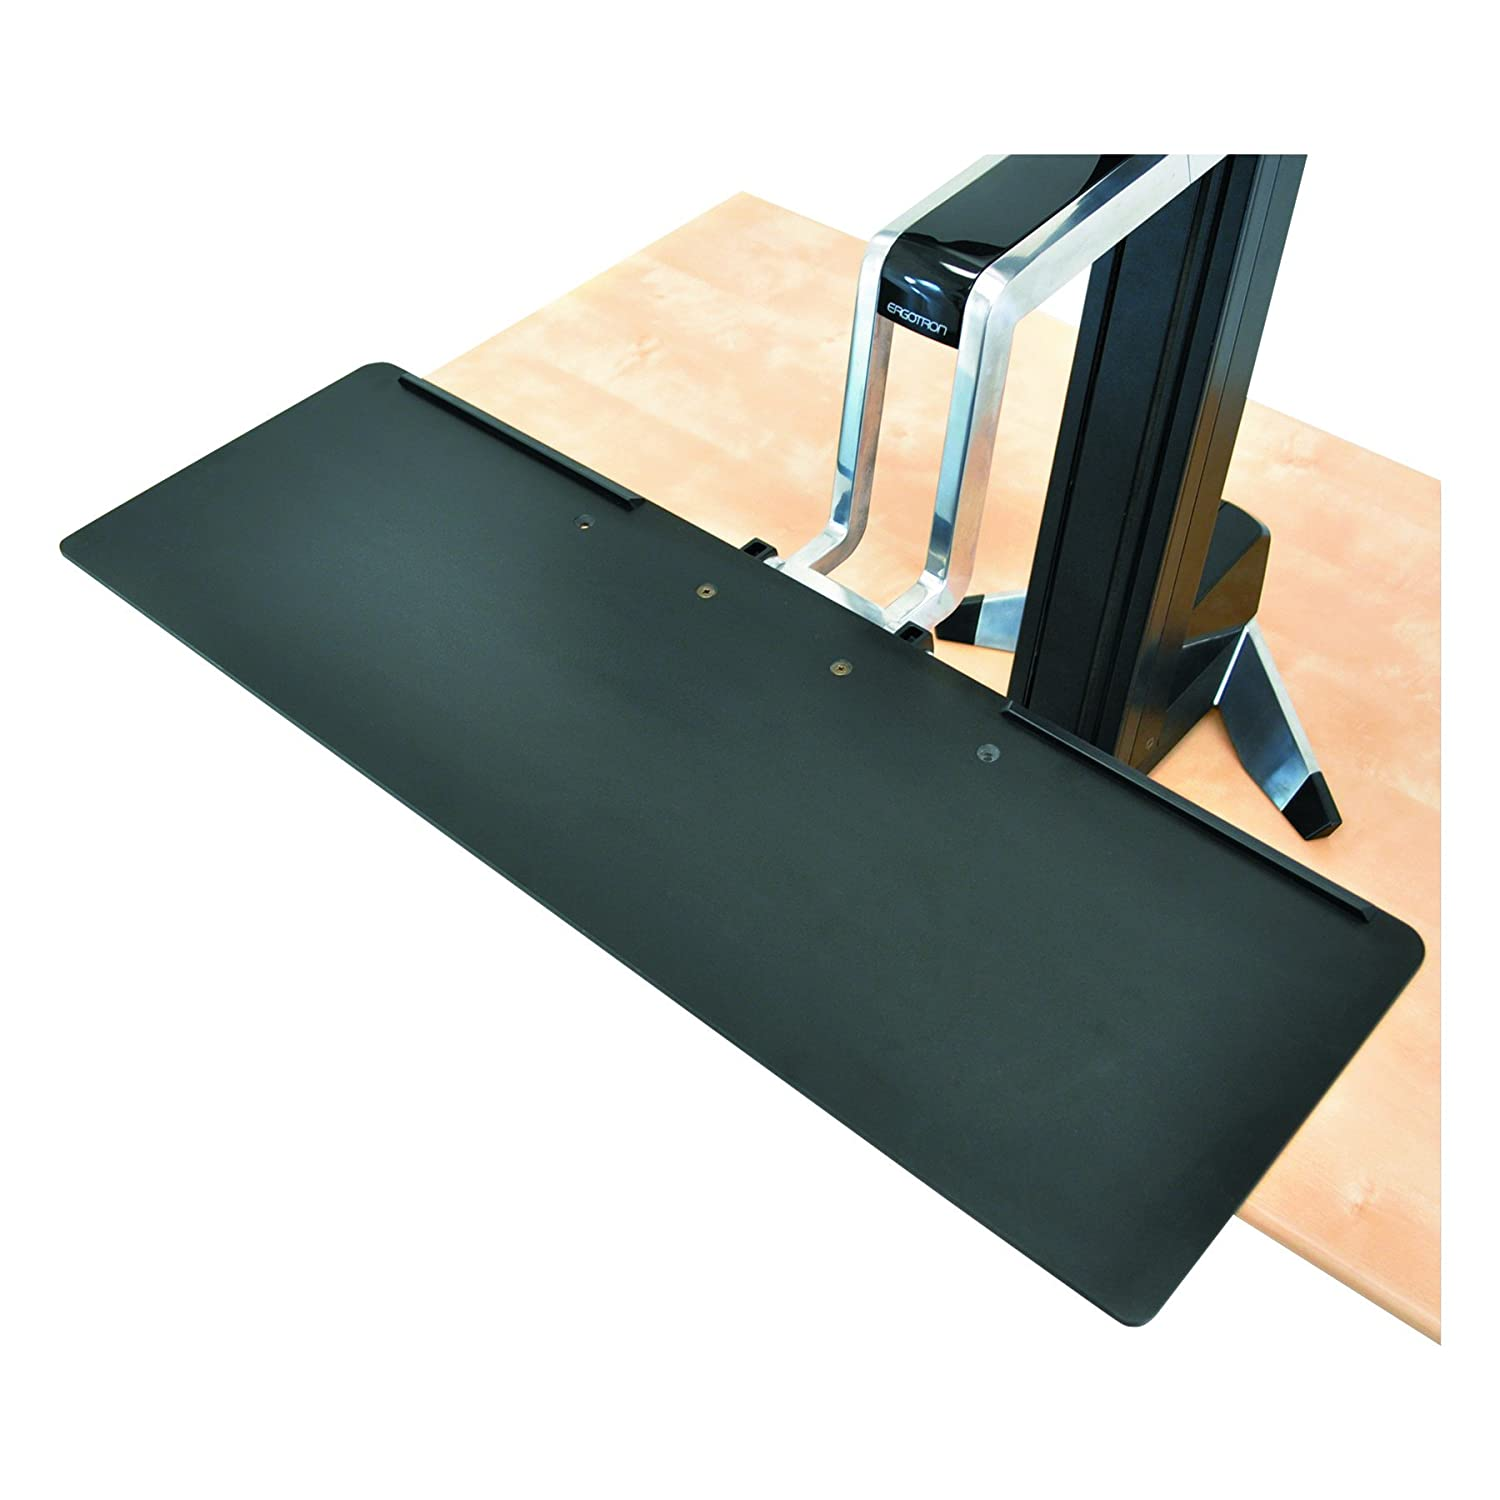 Large Keyboard Tray for Workfit-S Sit-Stand Workstation ERGOTRON 97653